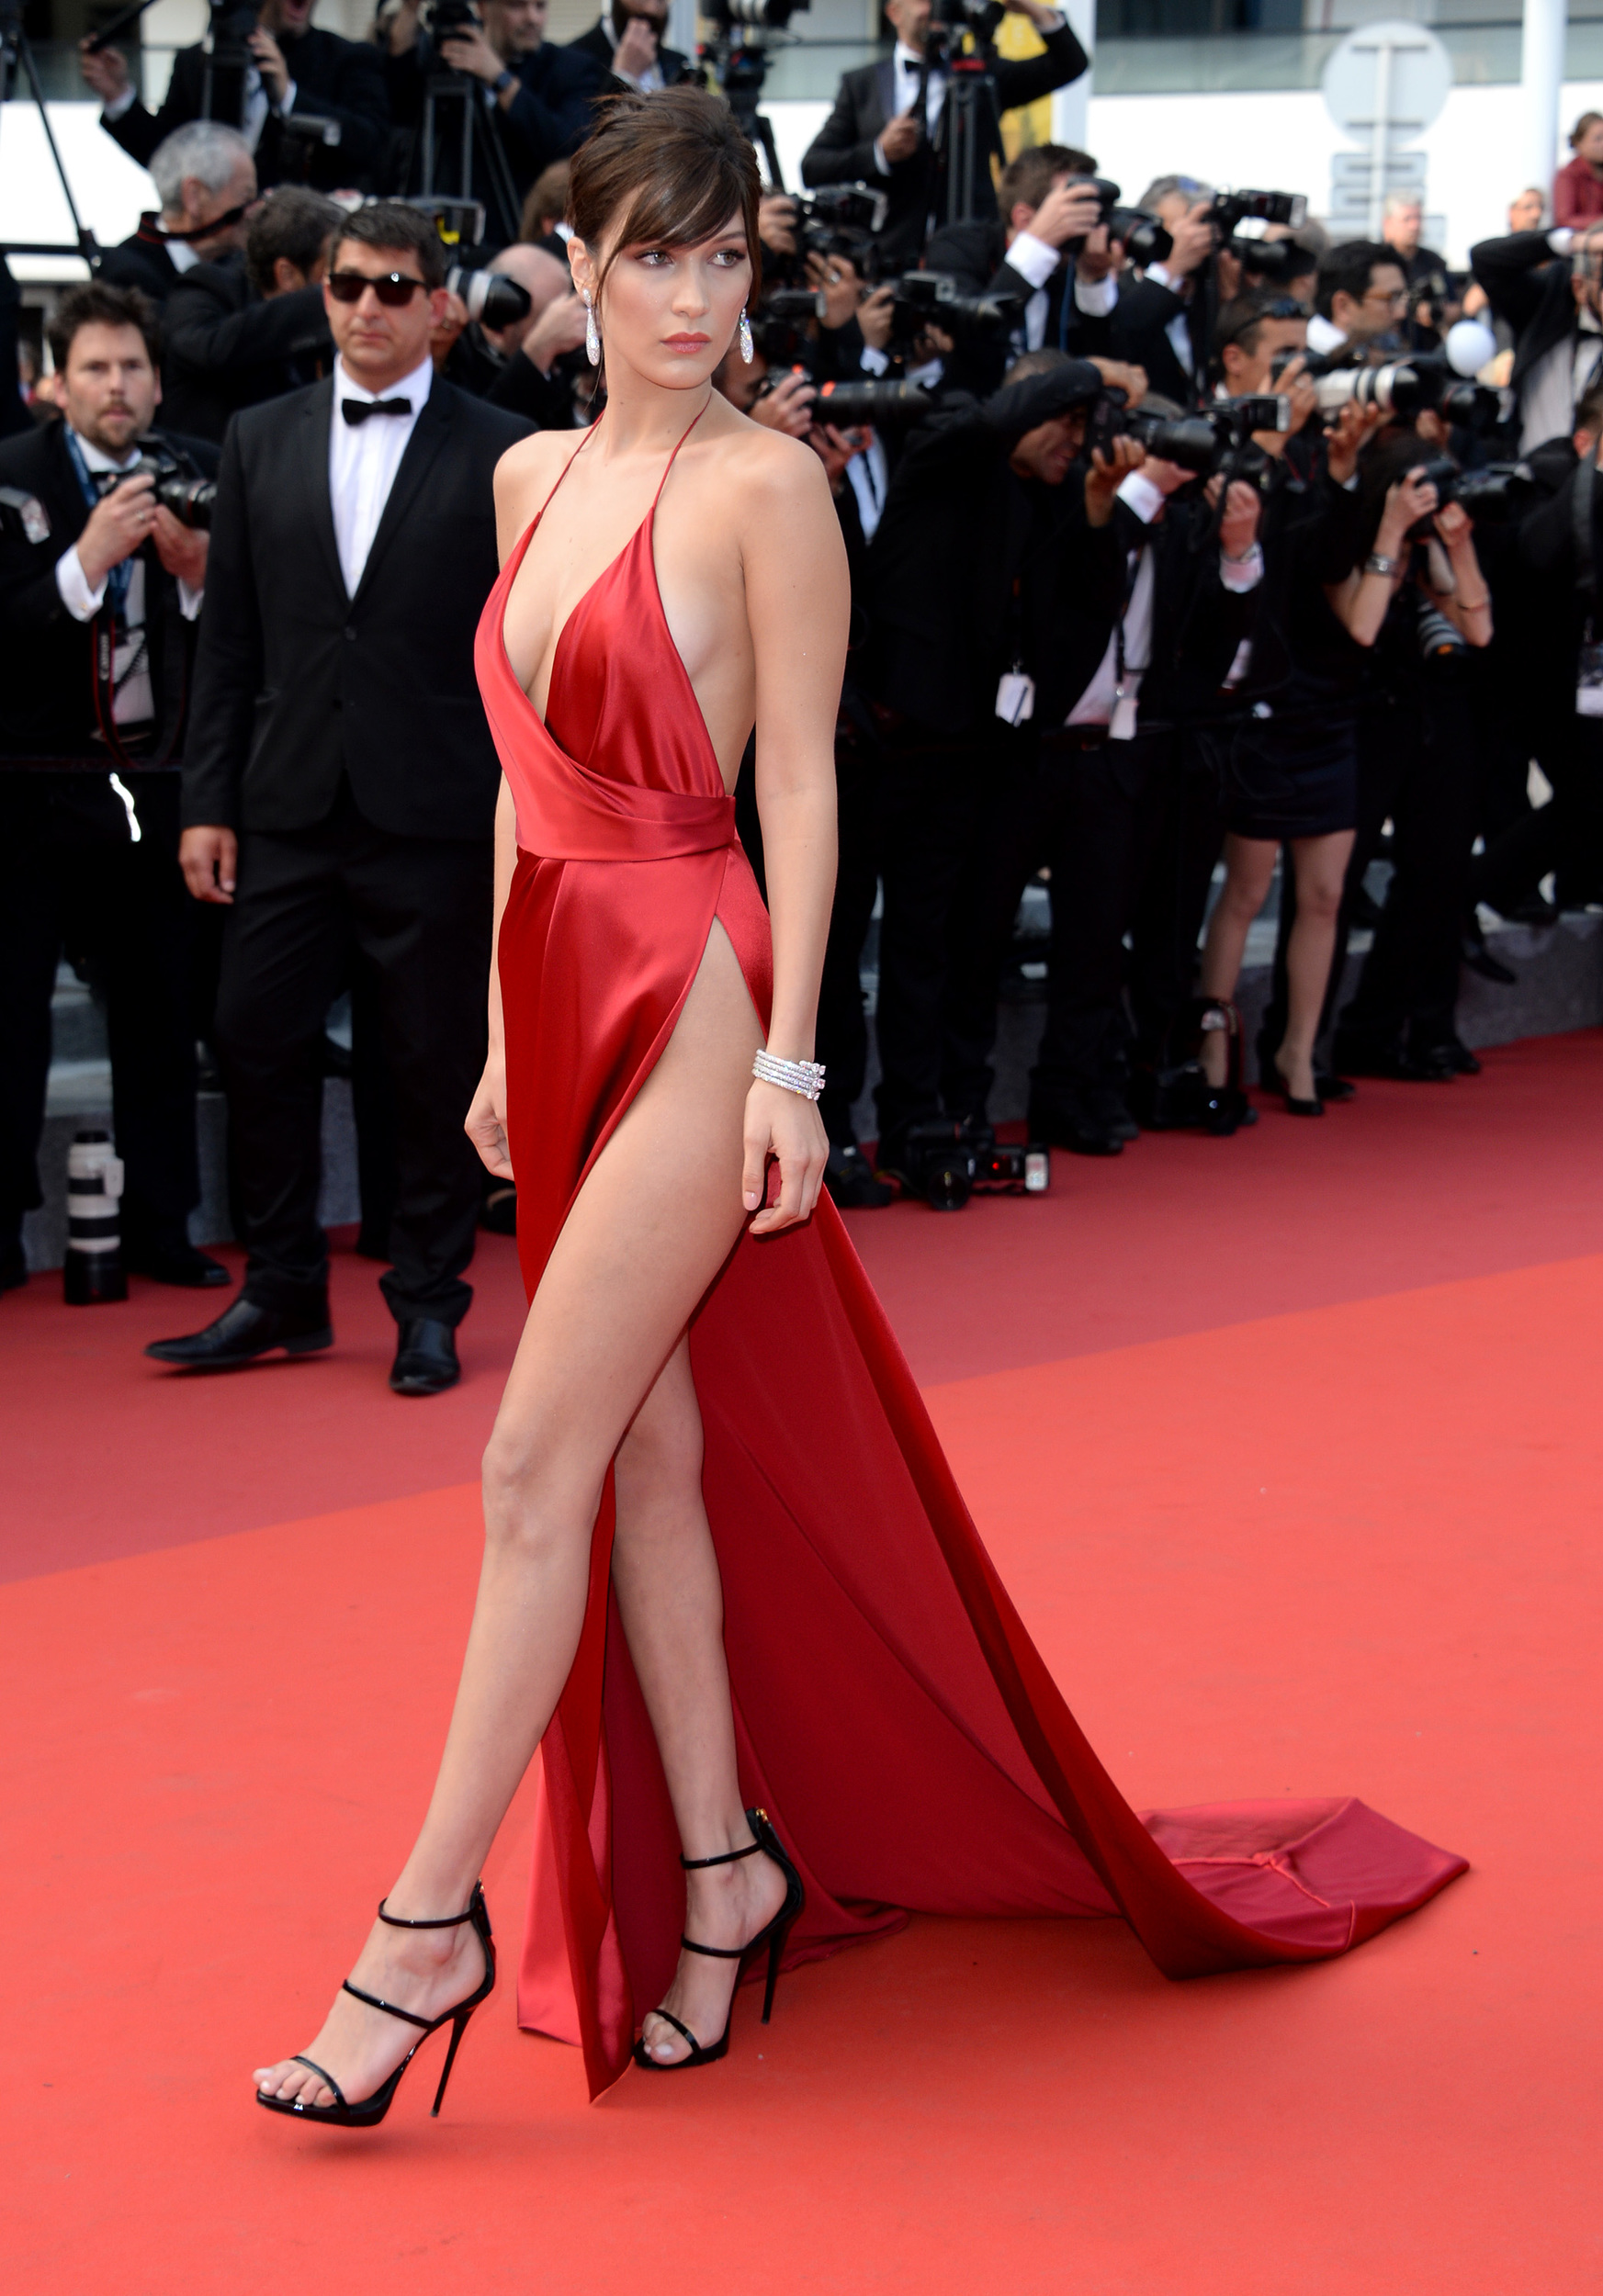 61dc7e03397b Bella Hadid suffers wardrobe malfunction in revealing red dress at Cannes  2016 - AOL Entertainment